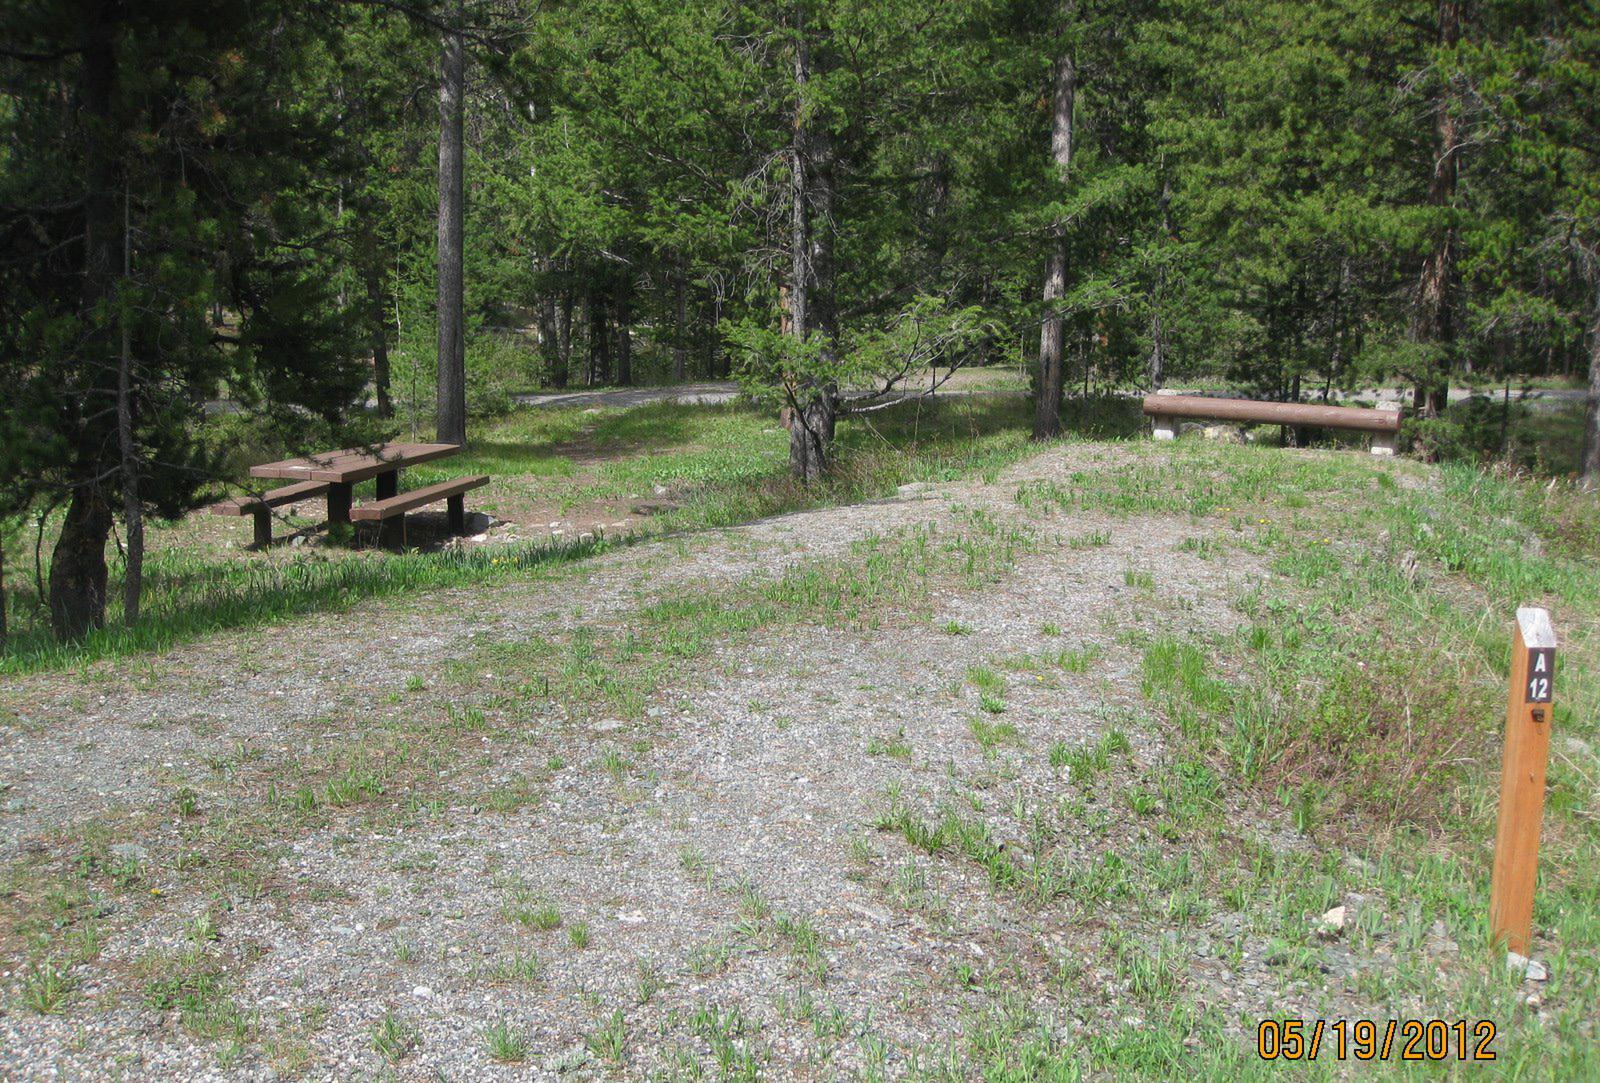 Site A12, campsite surrounded by pine trees, picnic table & fire ringSite A12